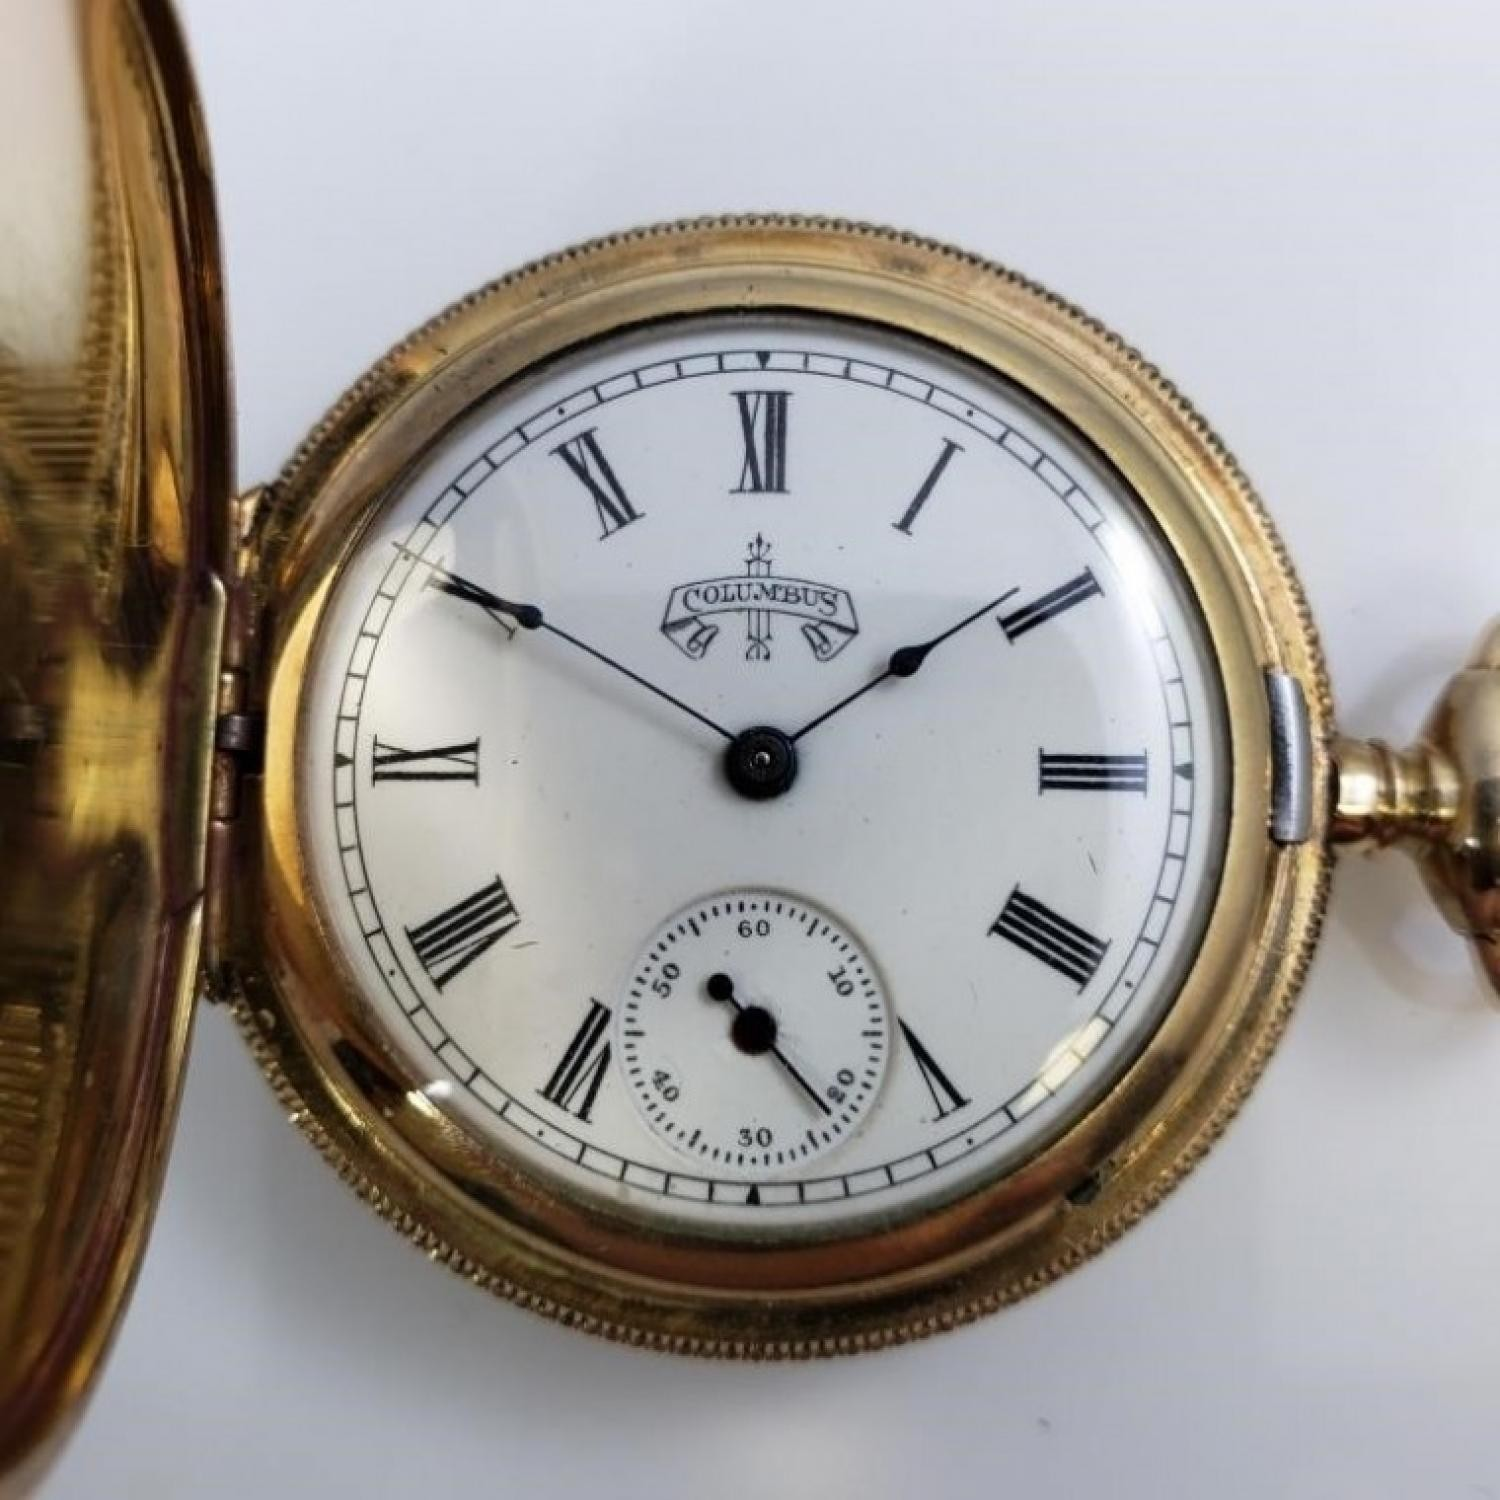 Image of Columbus Watch Co. 22 #348611 Dial